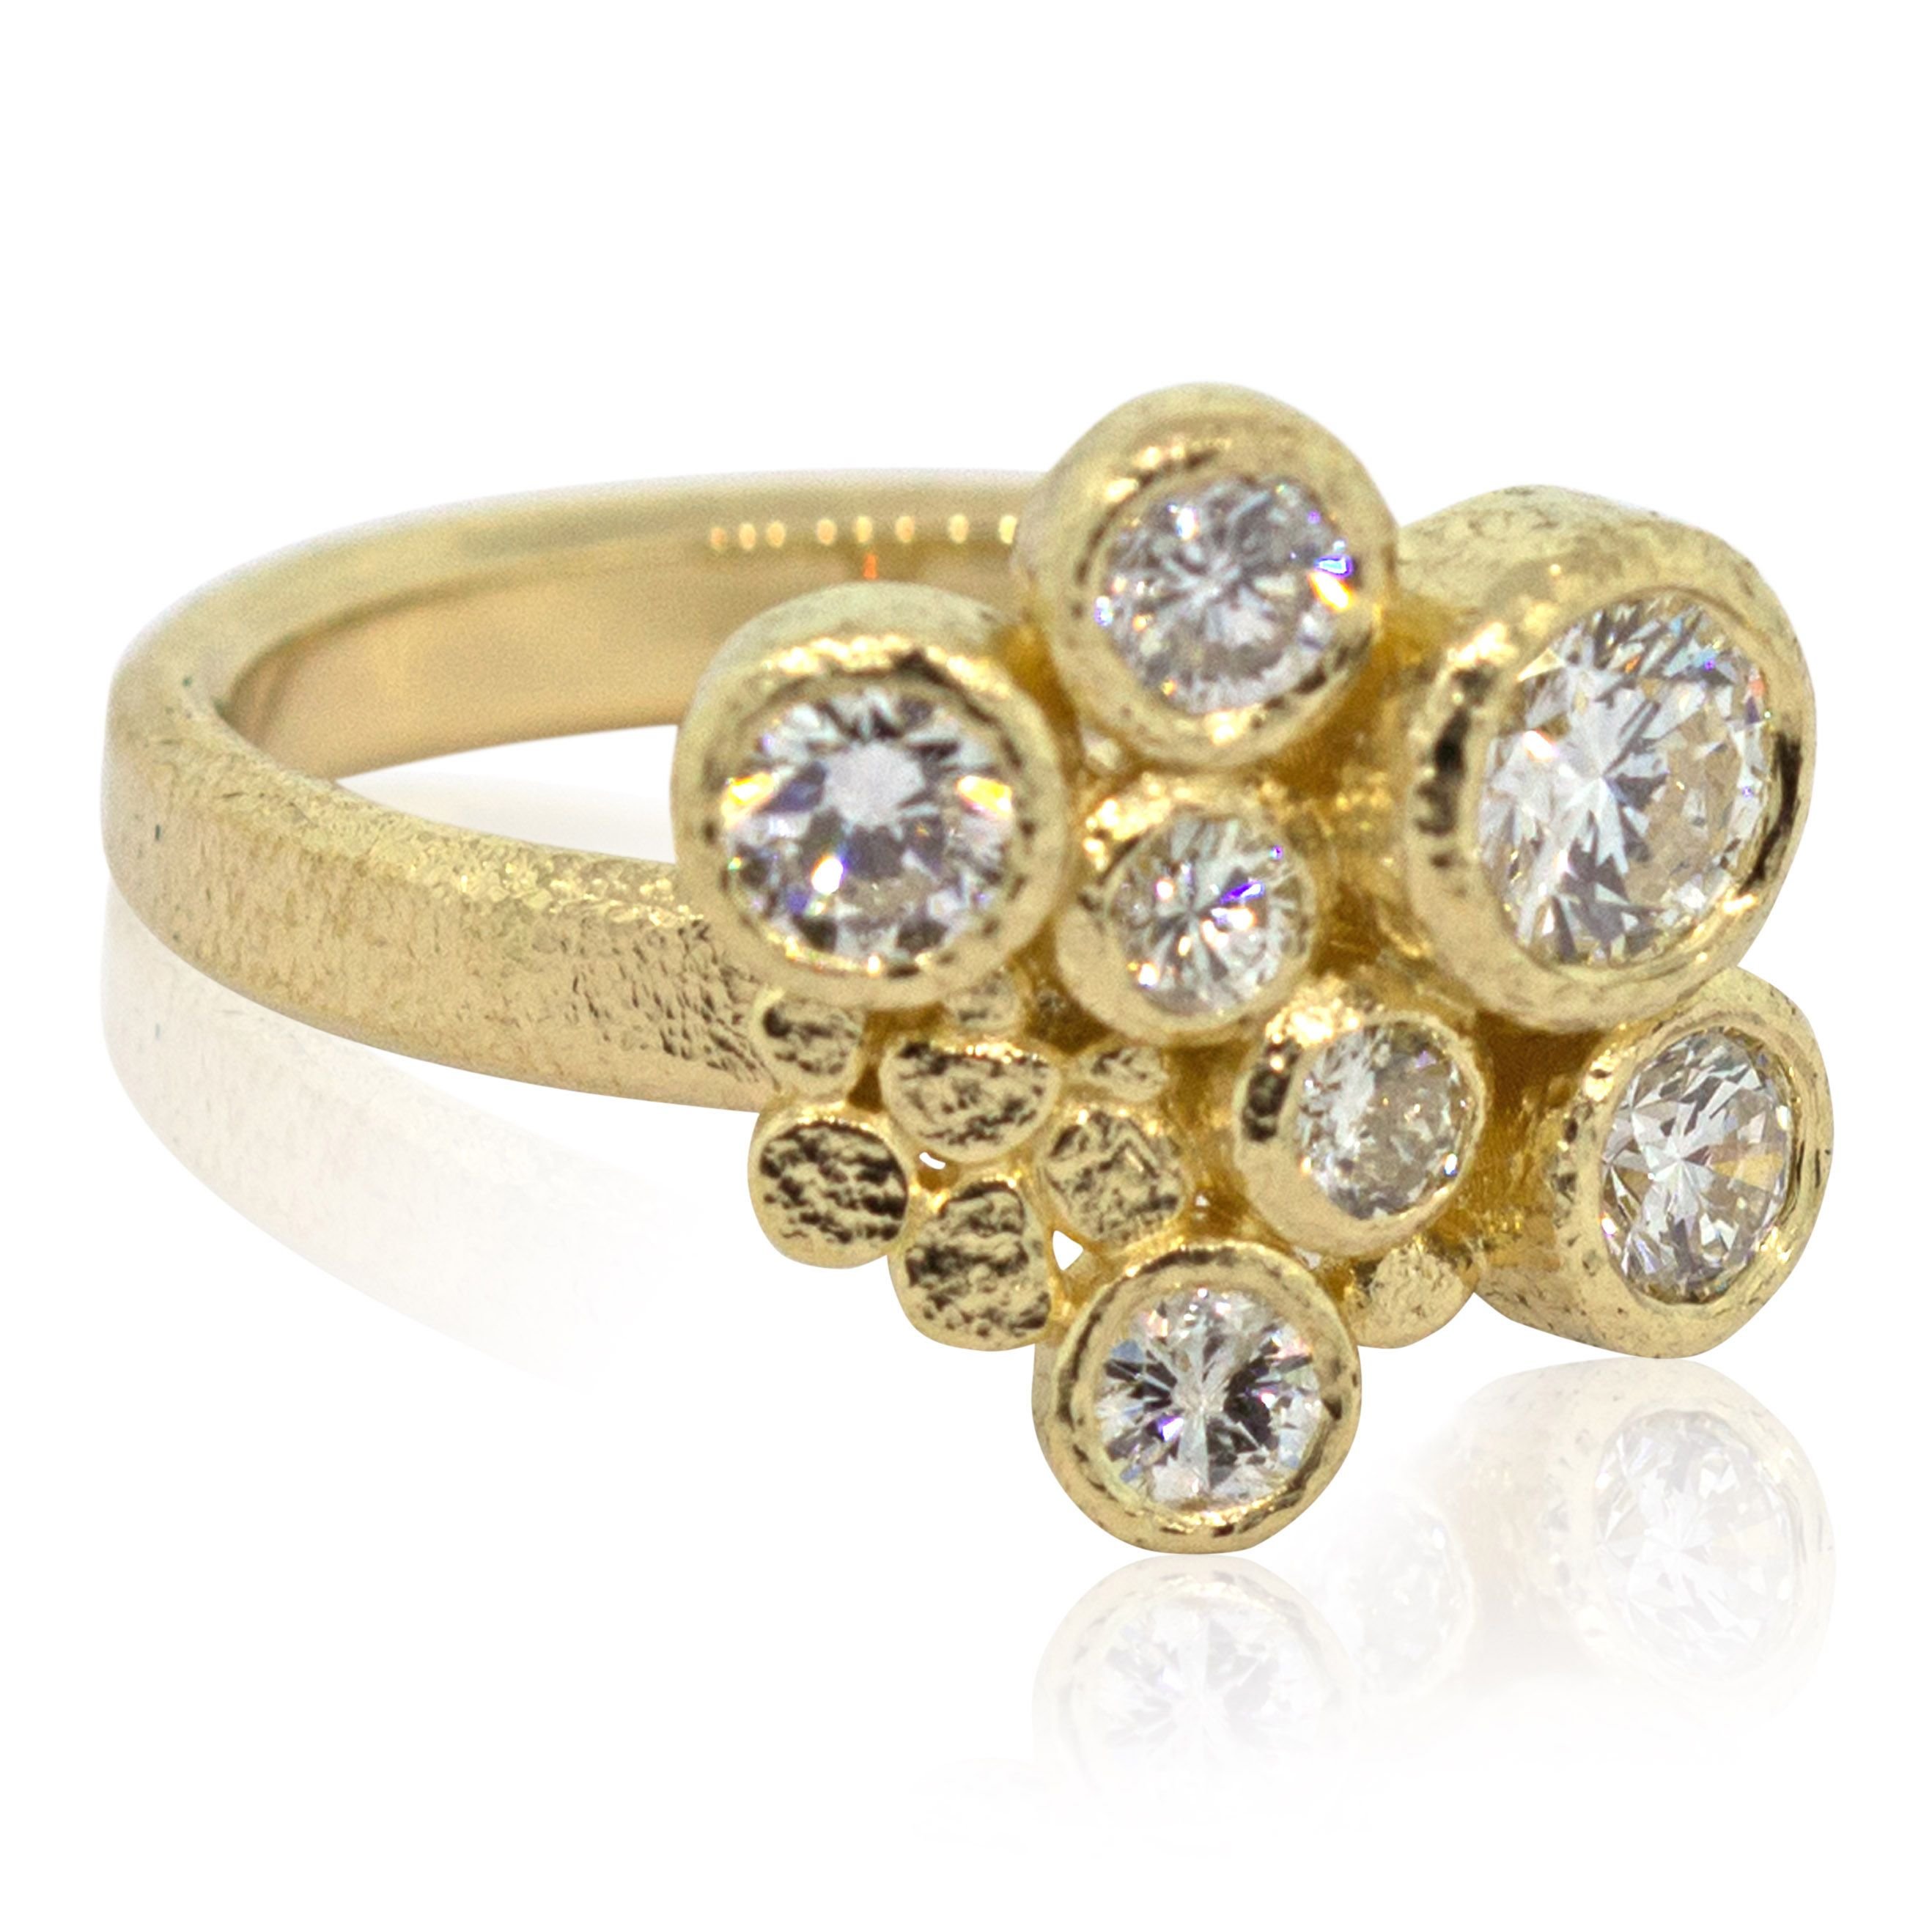 jewellery ring baby diamond large products engagement rings by product neo gold fine